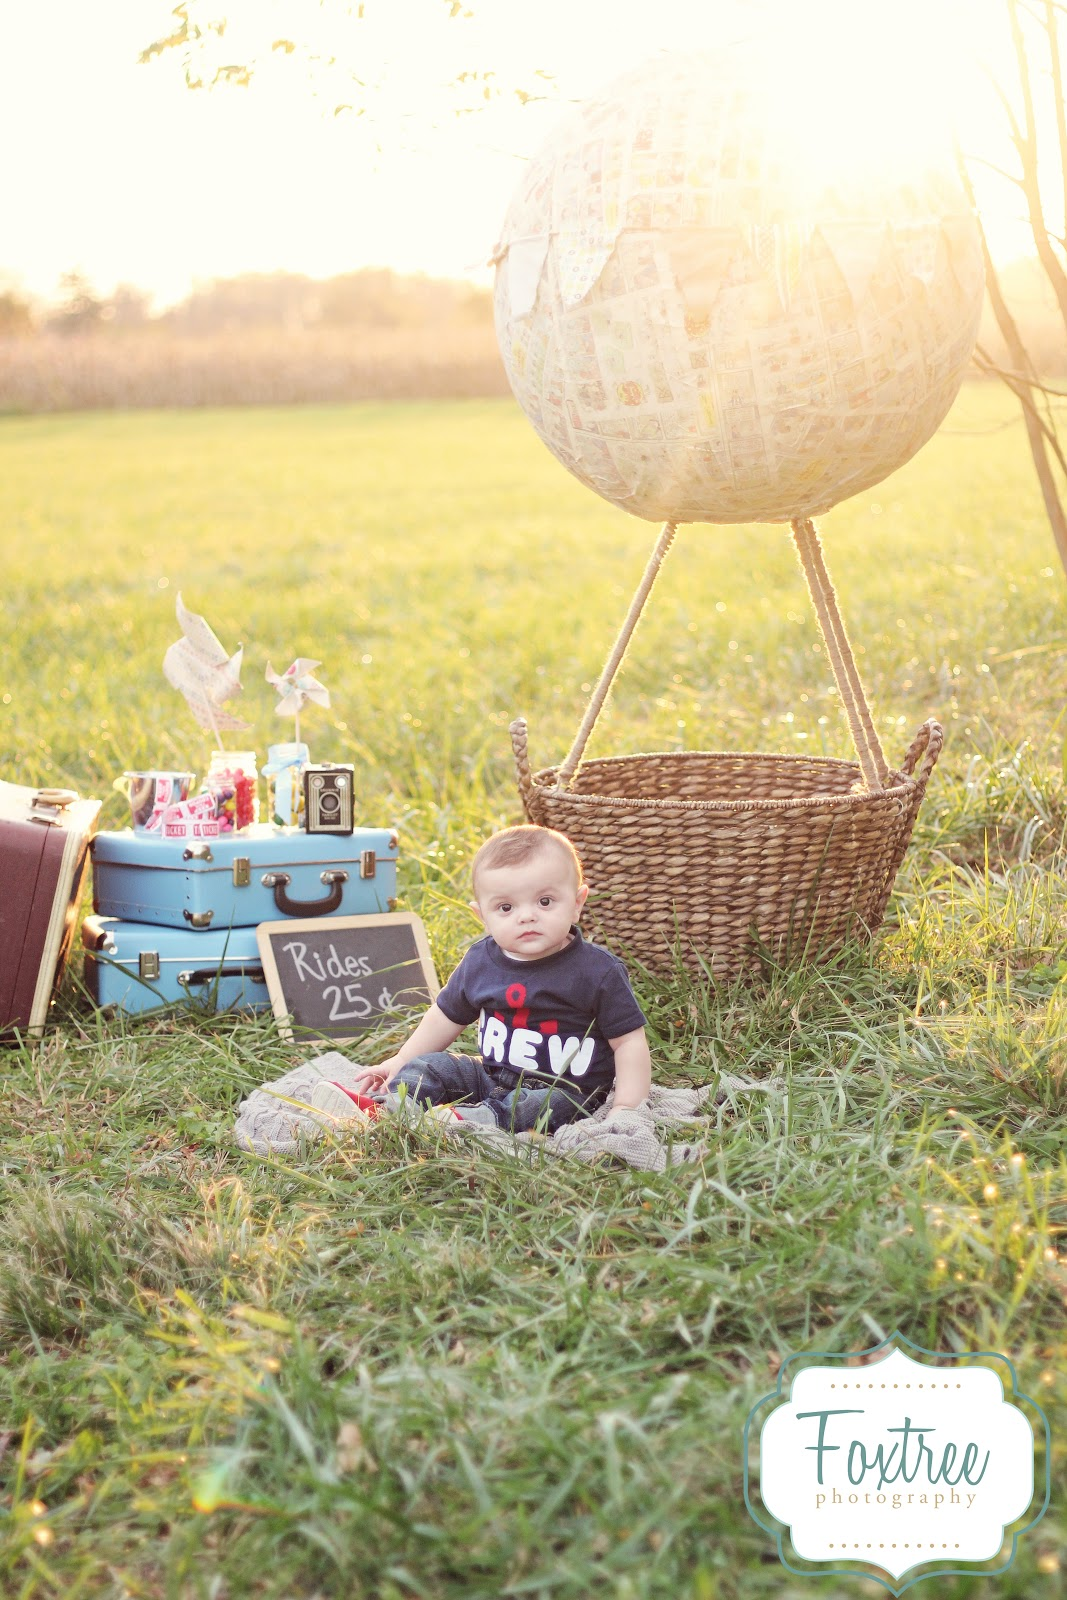 Foxtree Photography Propology Diy Hot Air Balloon On A